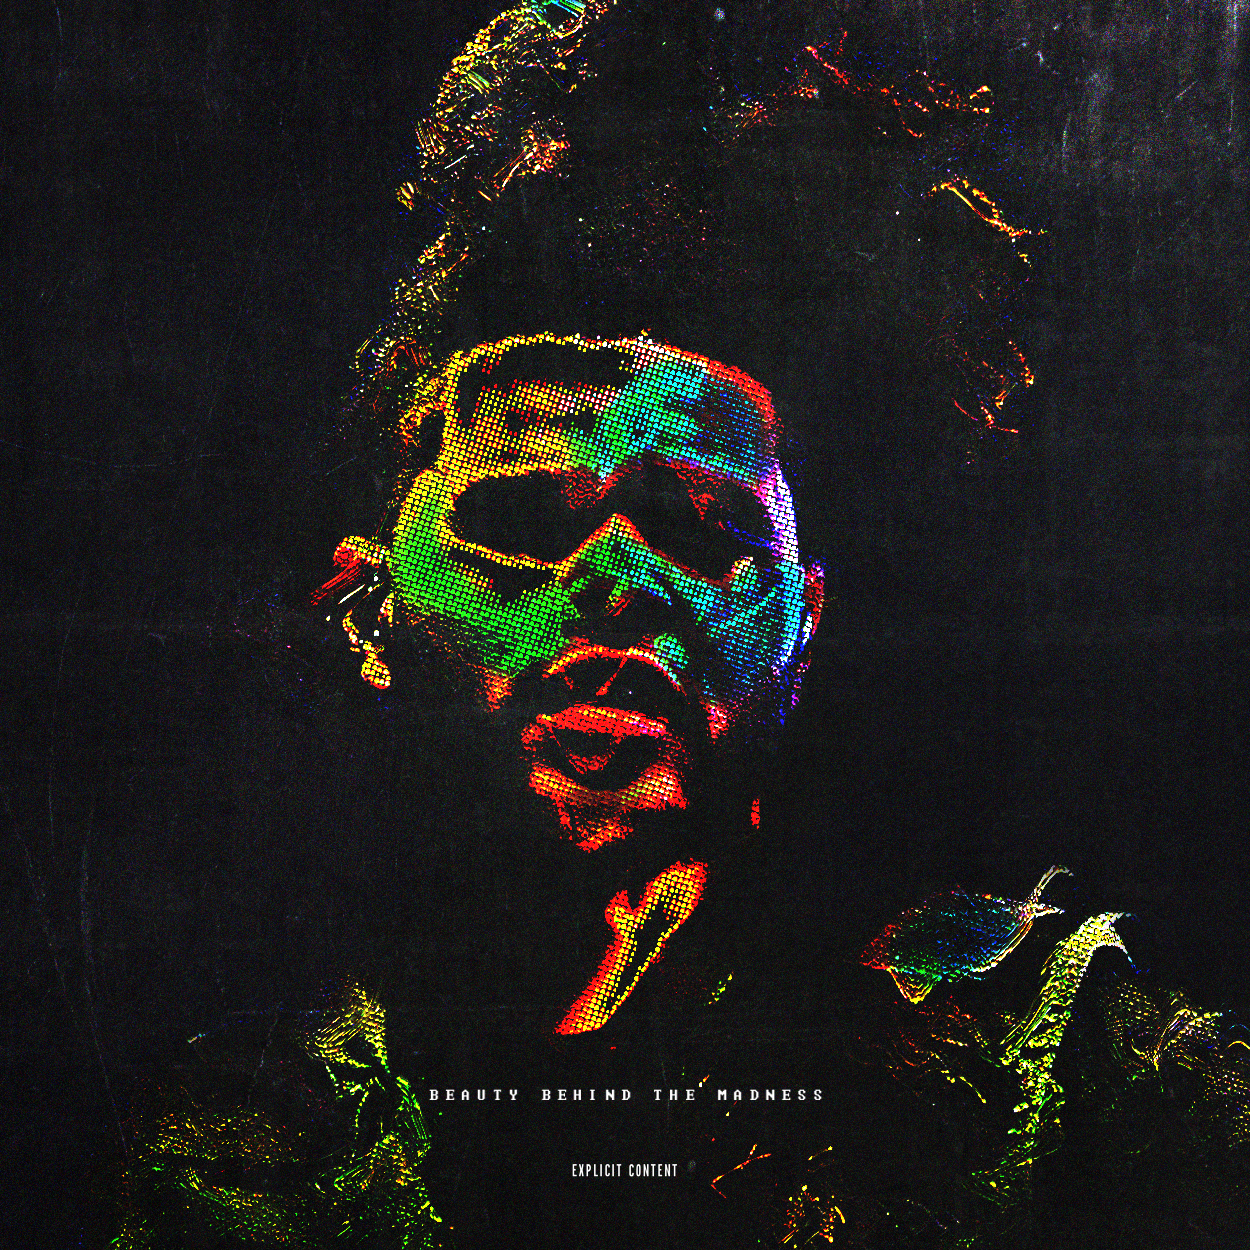 beauty behind the madness album full download